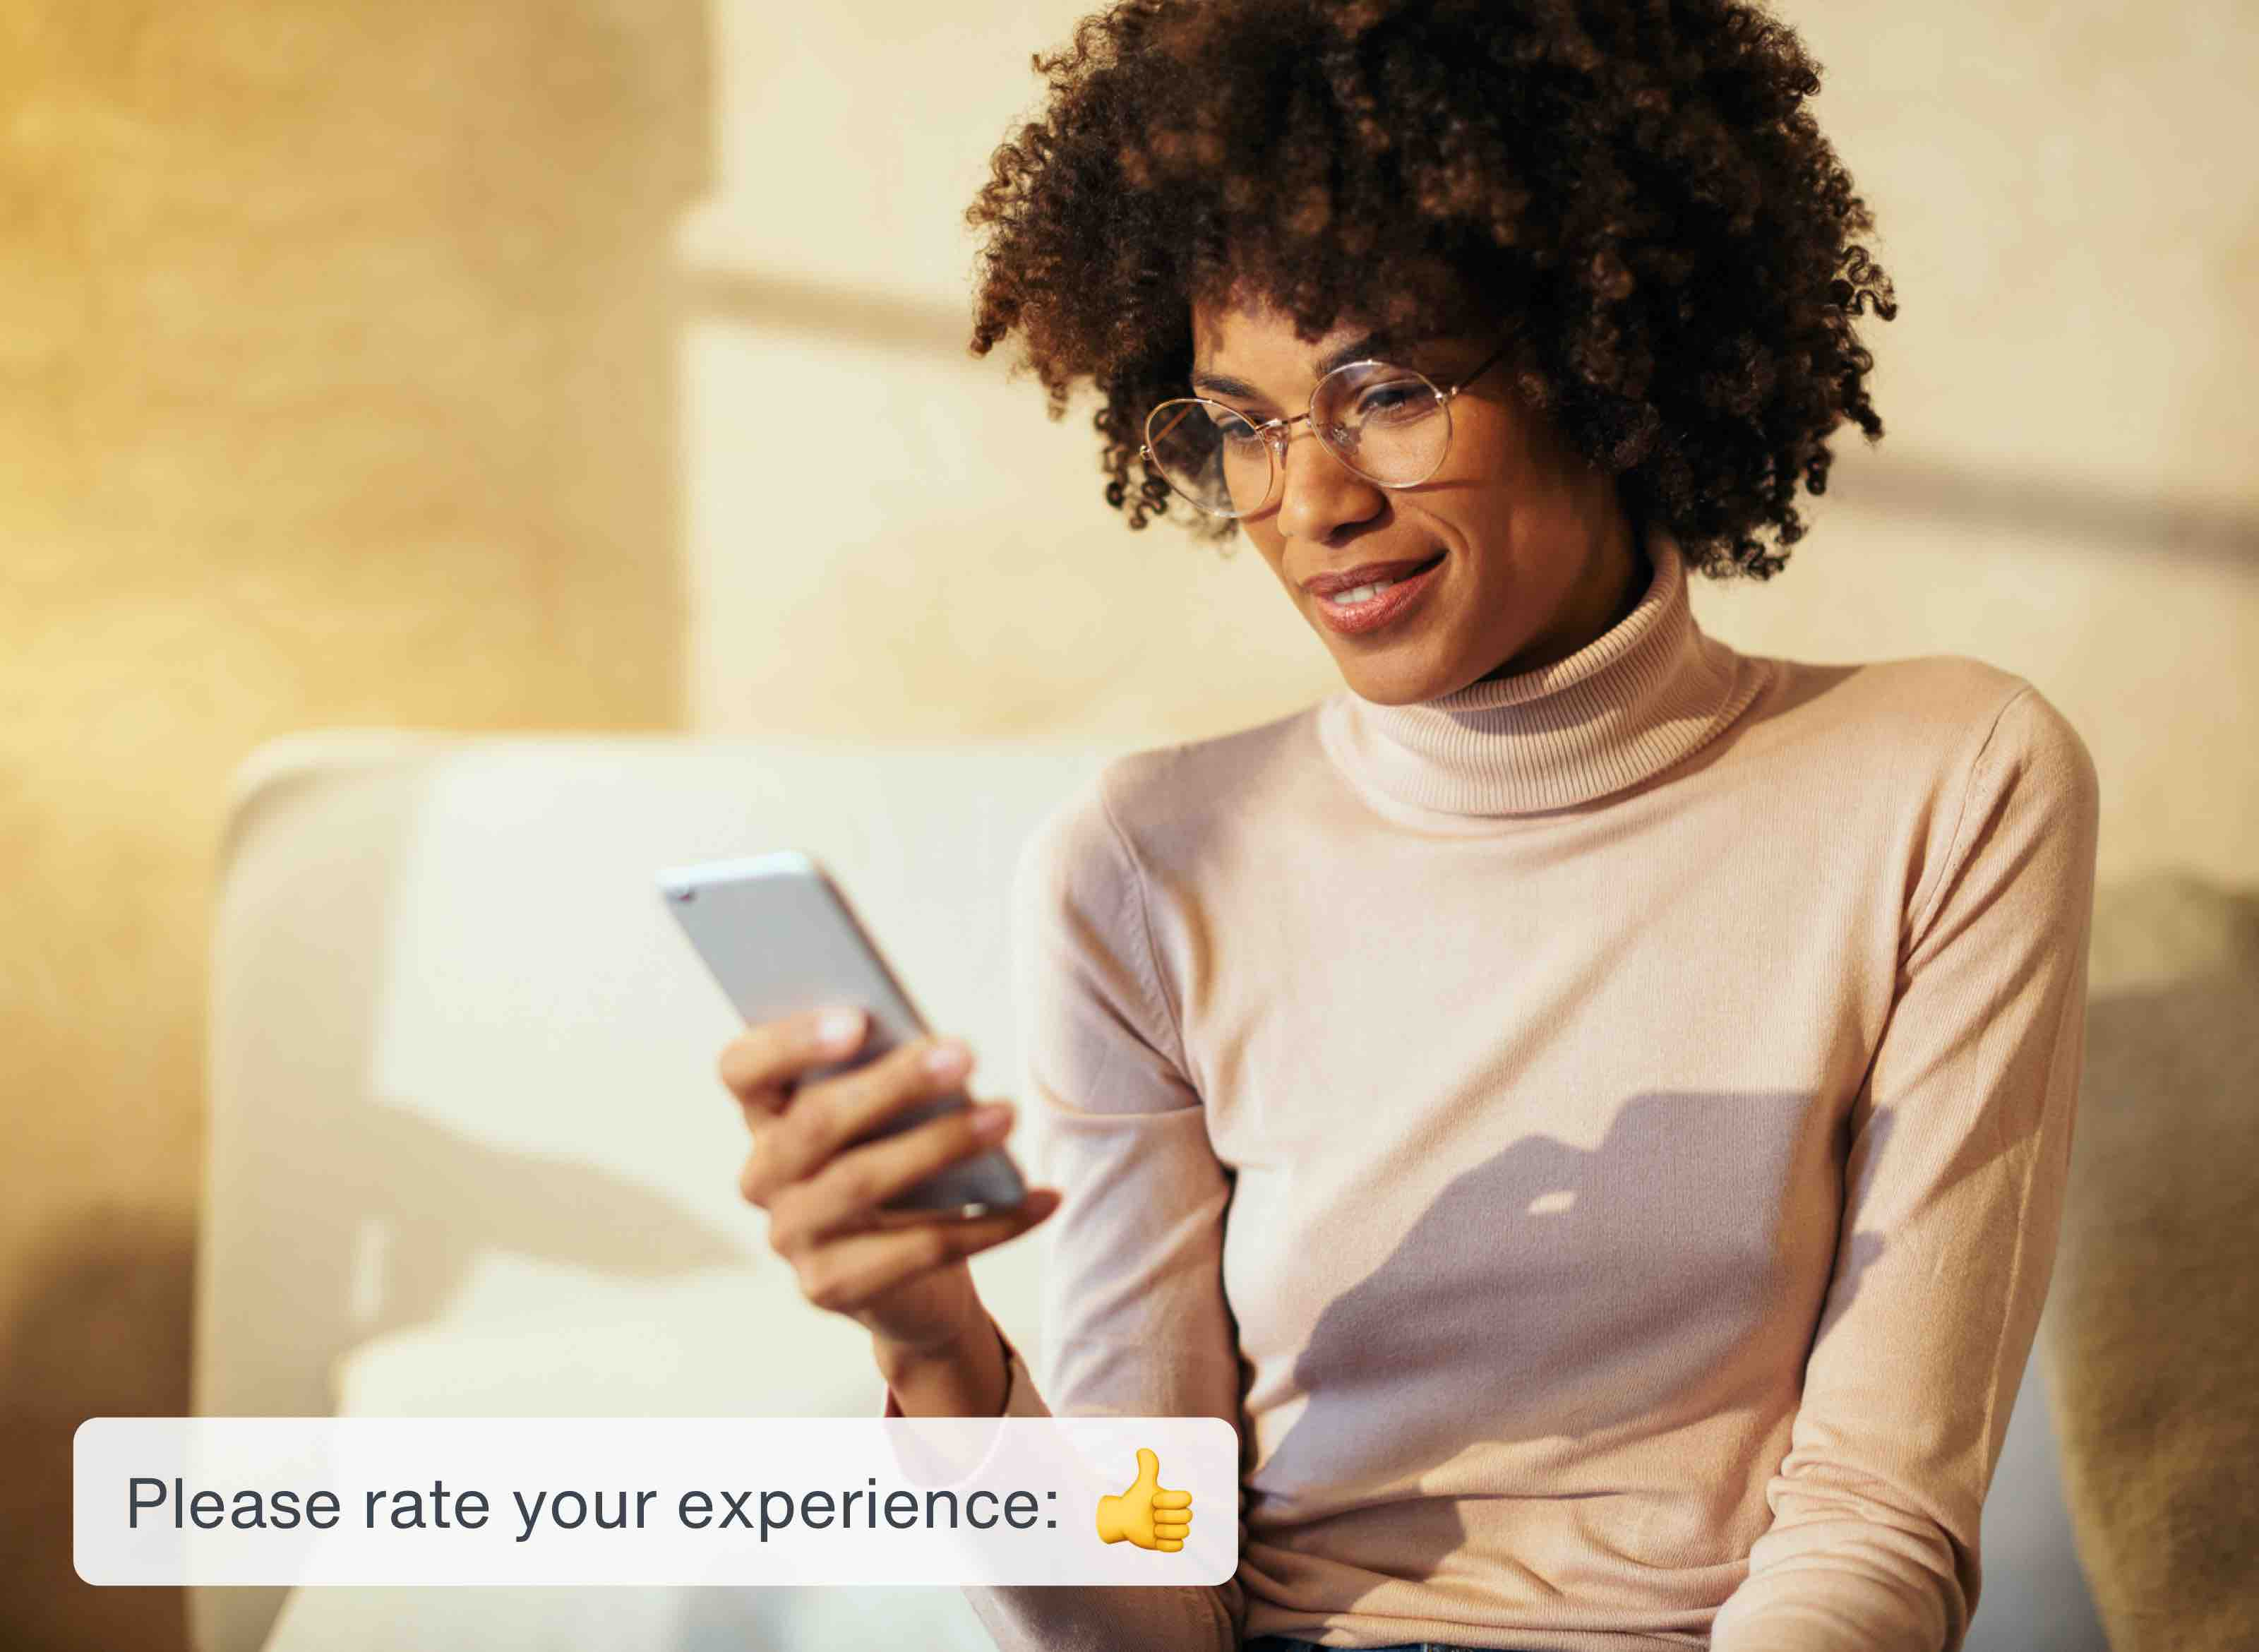 A woman relaxes with her phone and rates her experience with the app